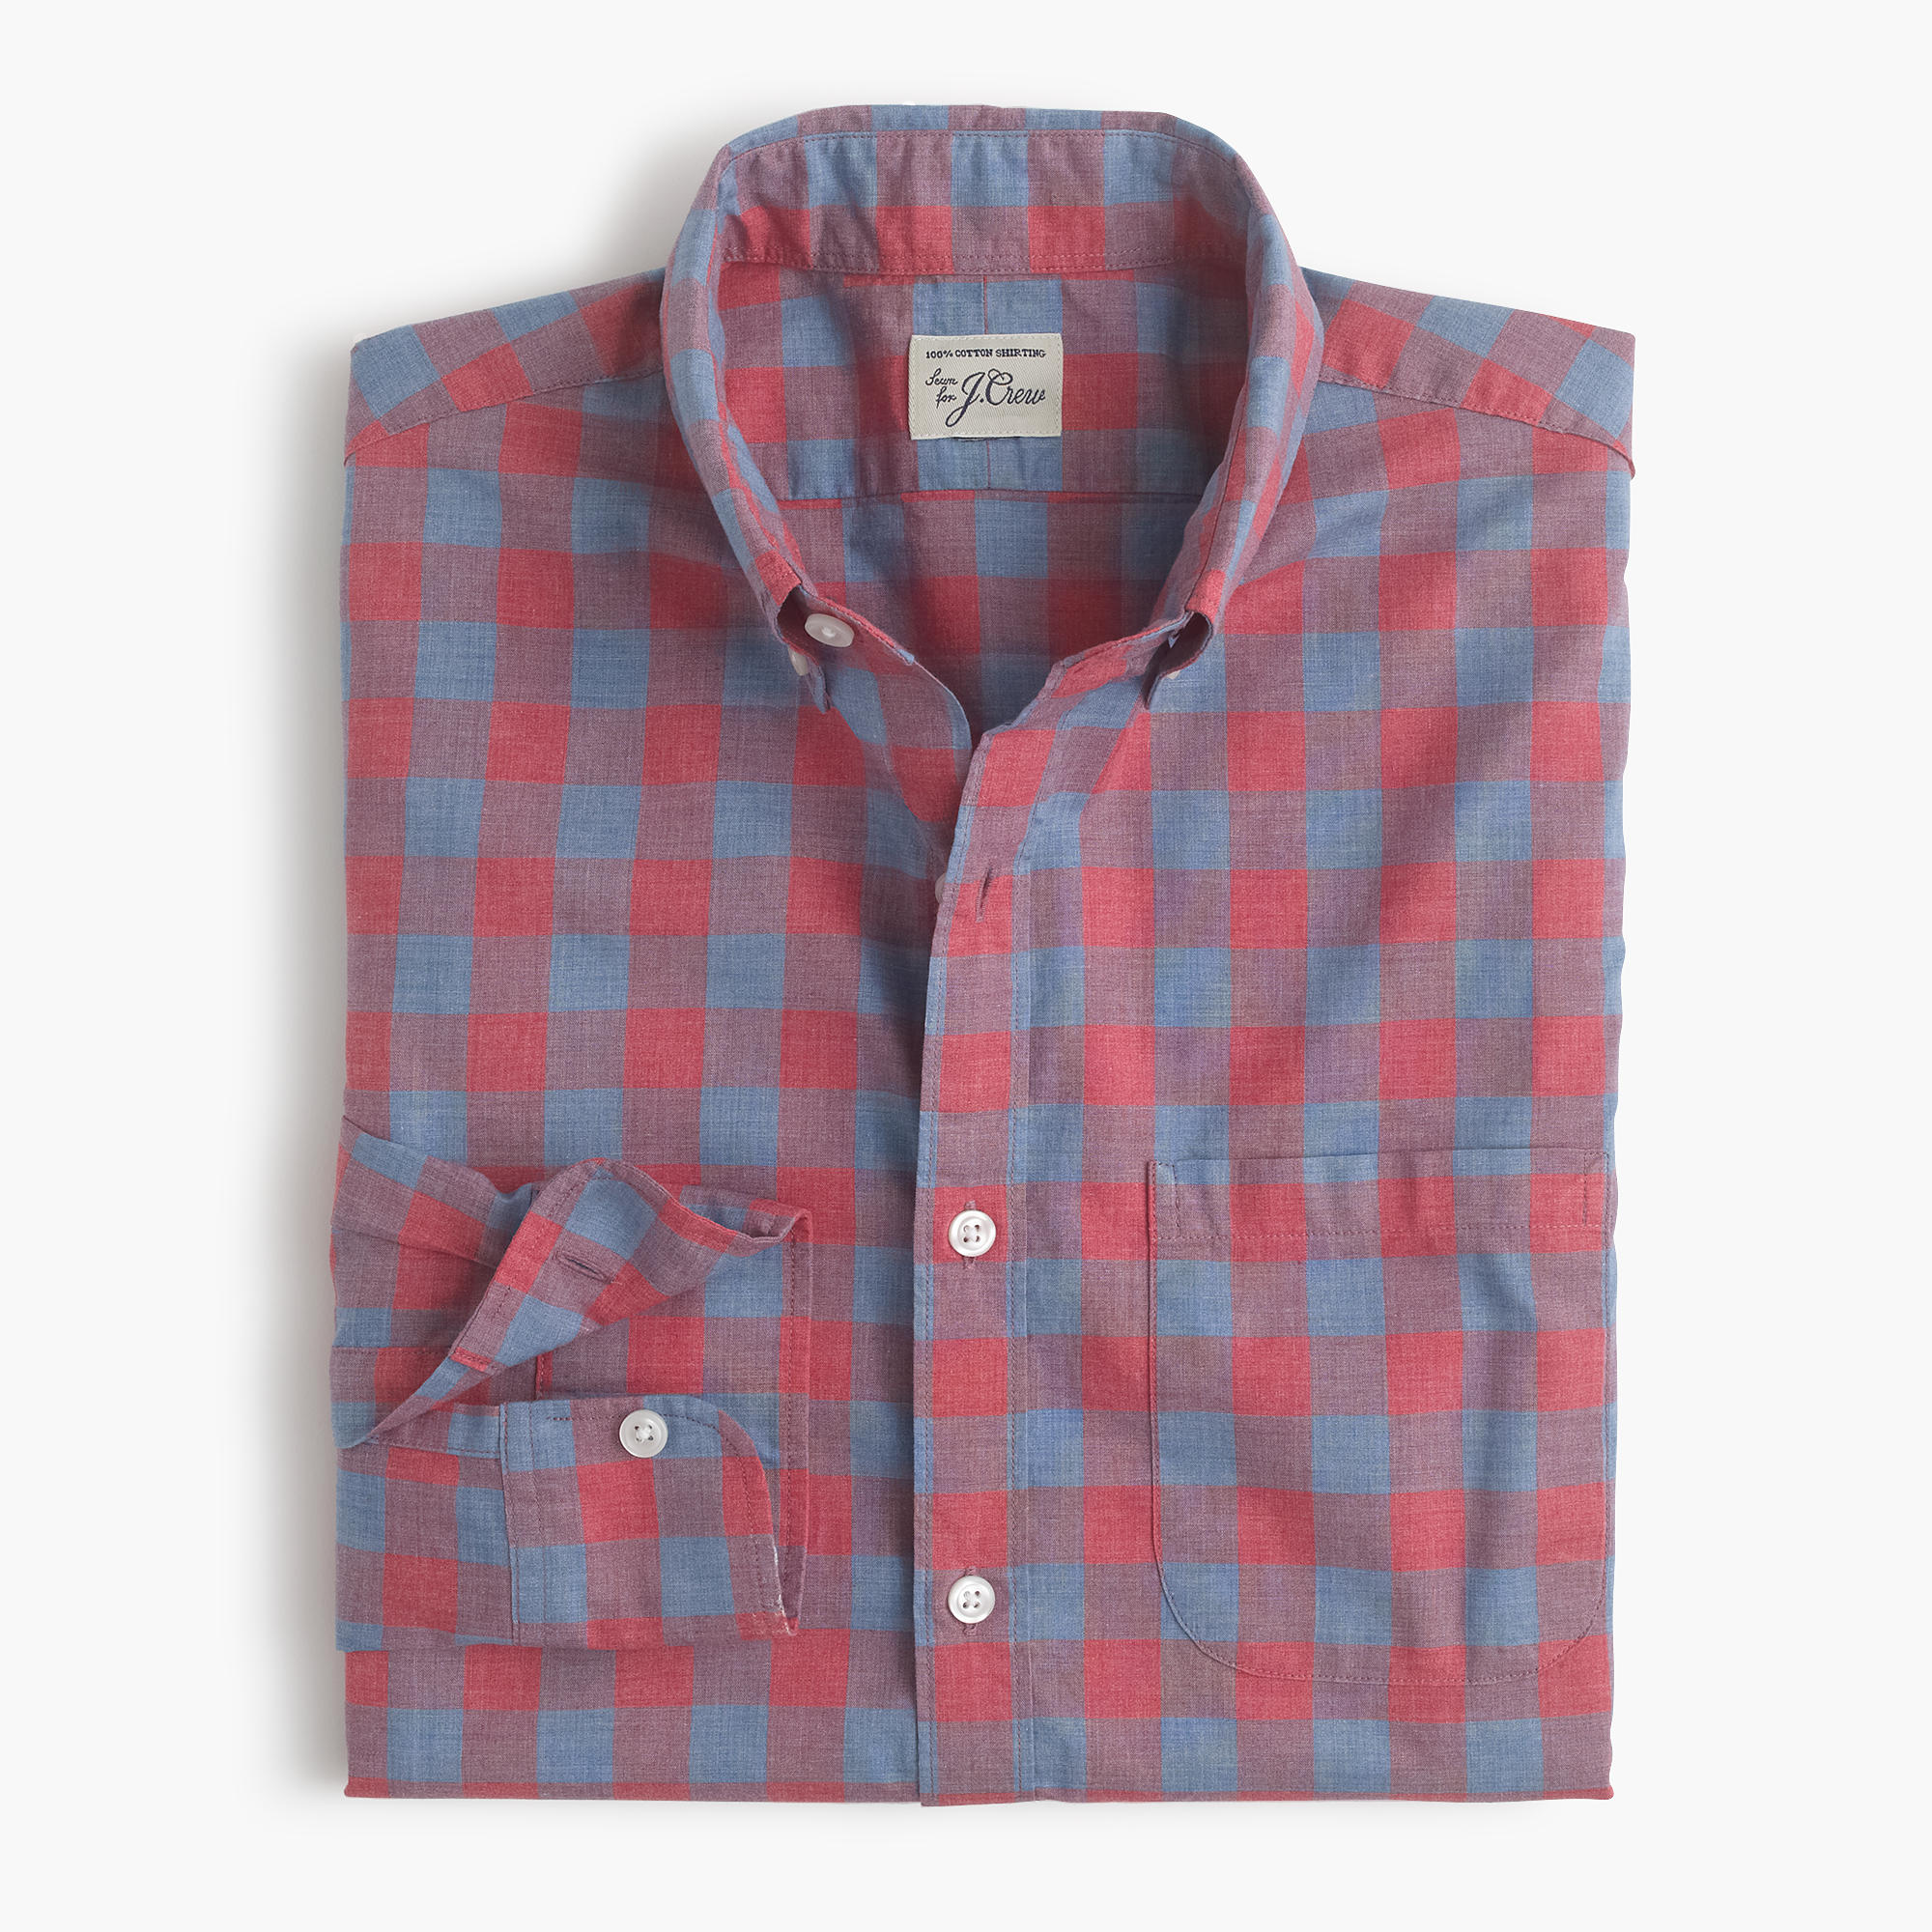 J.Crew Gingham Cotton